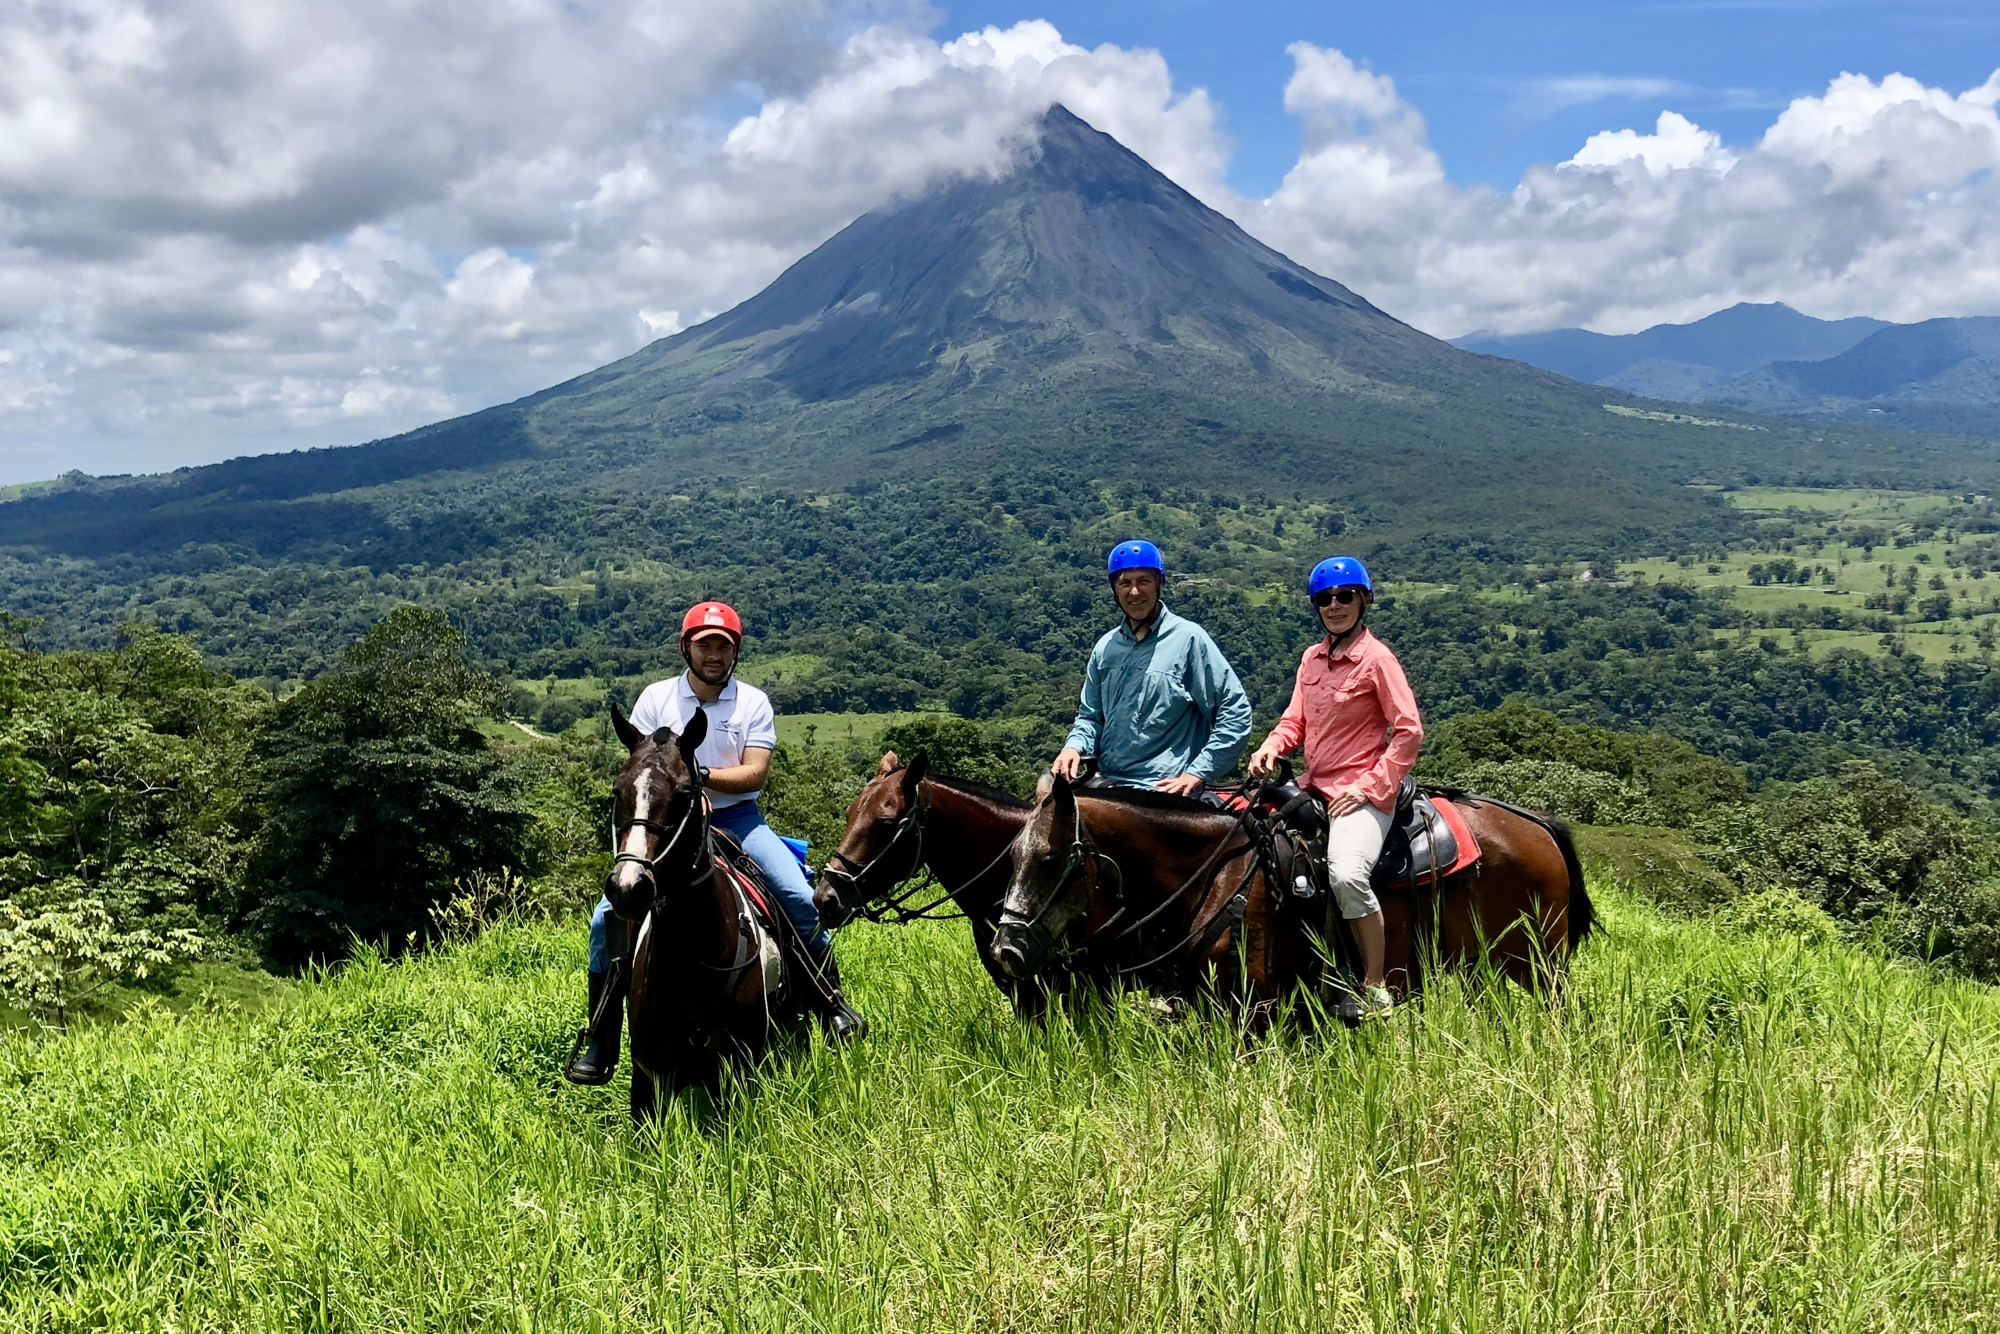 A guided tour on horseback under the volcano